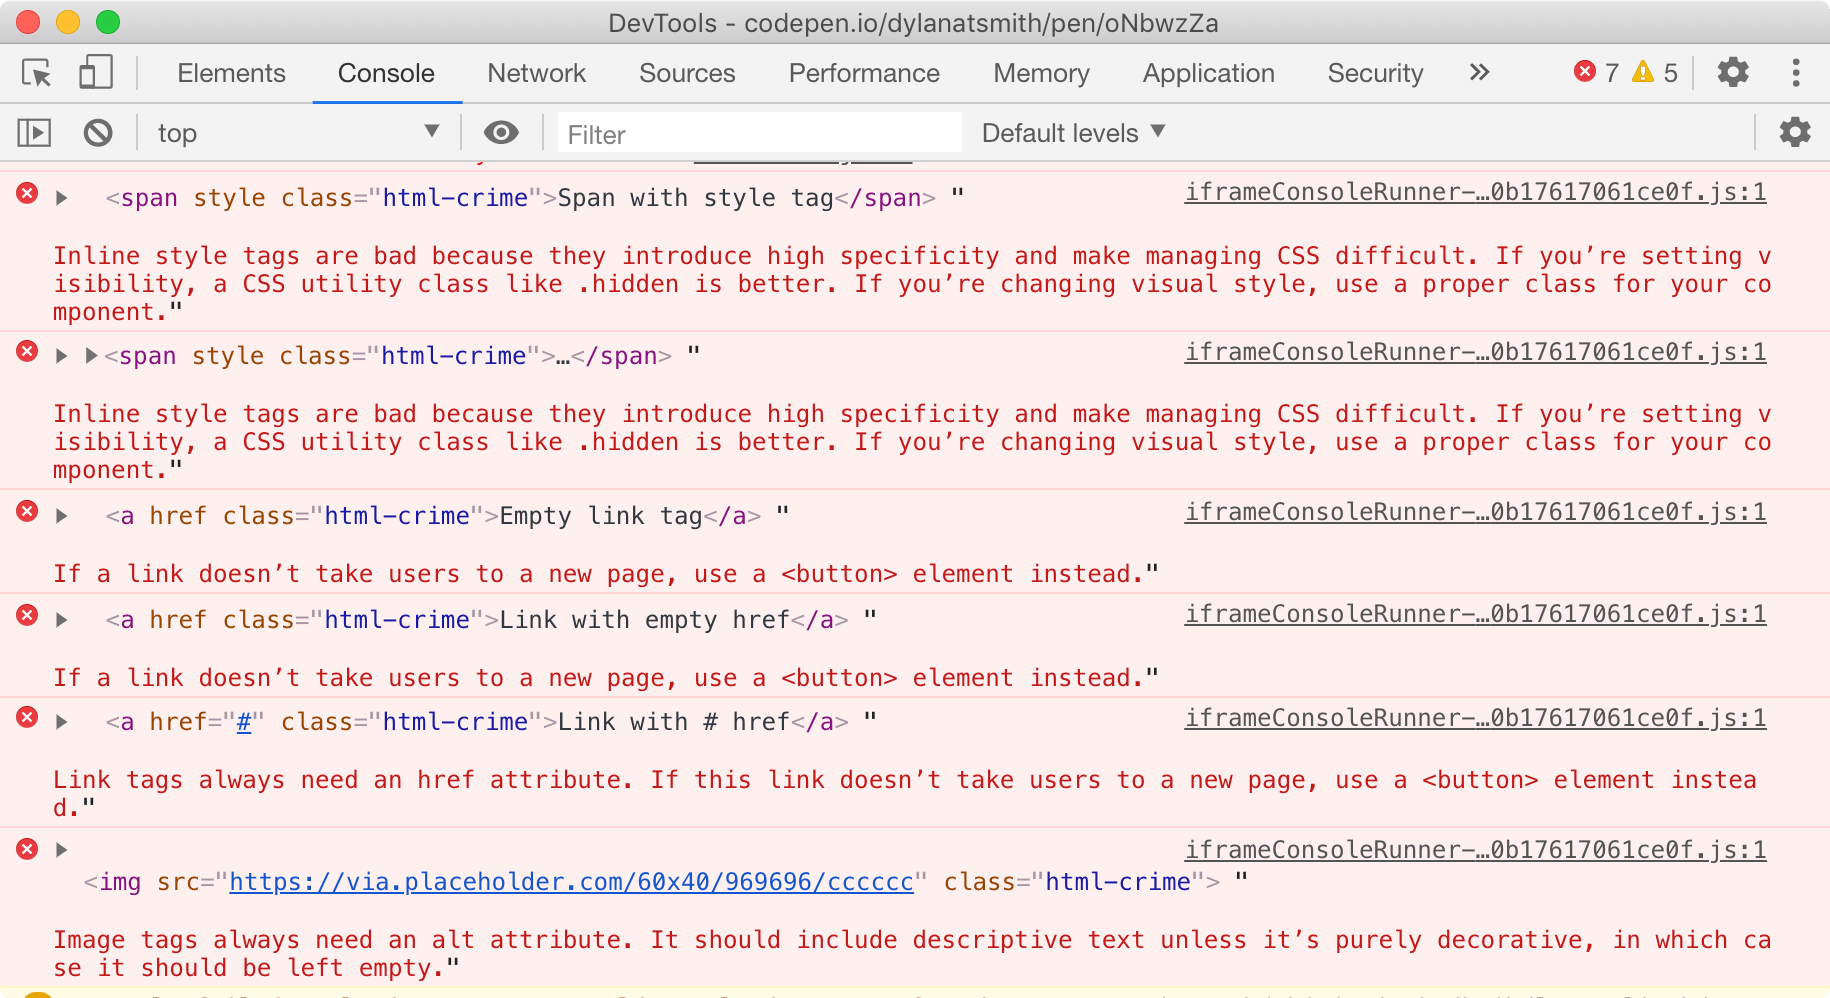 Chrome's developer tools console displaying errors for common accessibility and semantic HTML issues